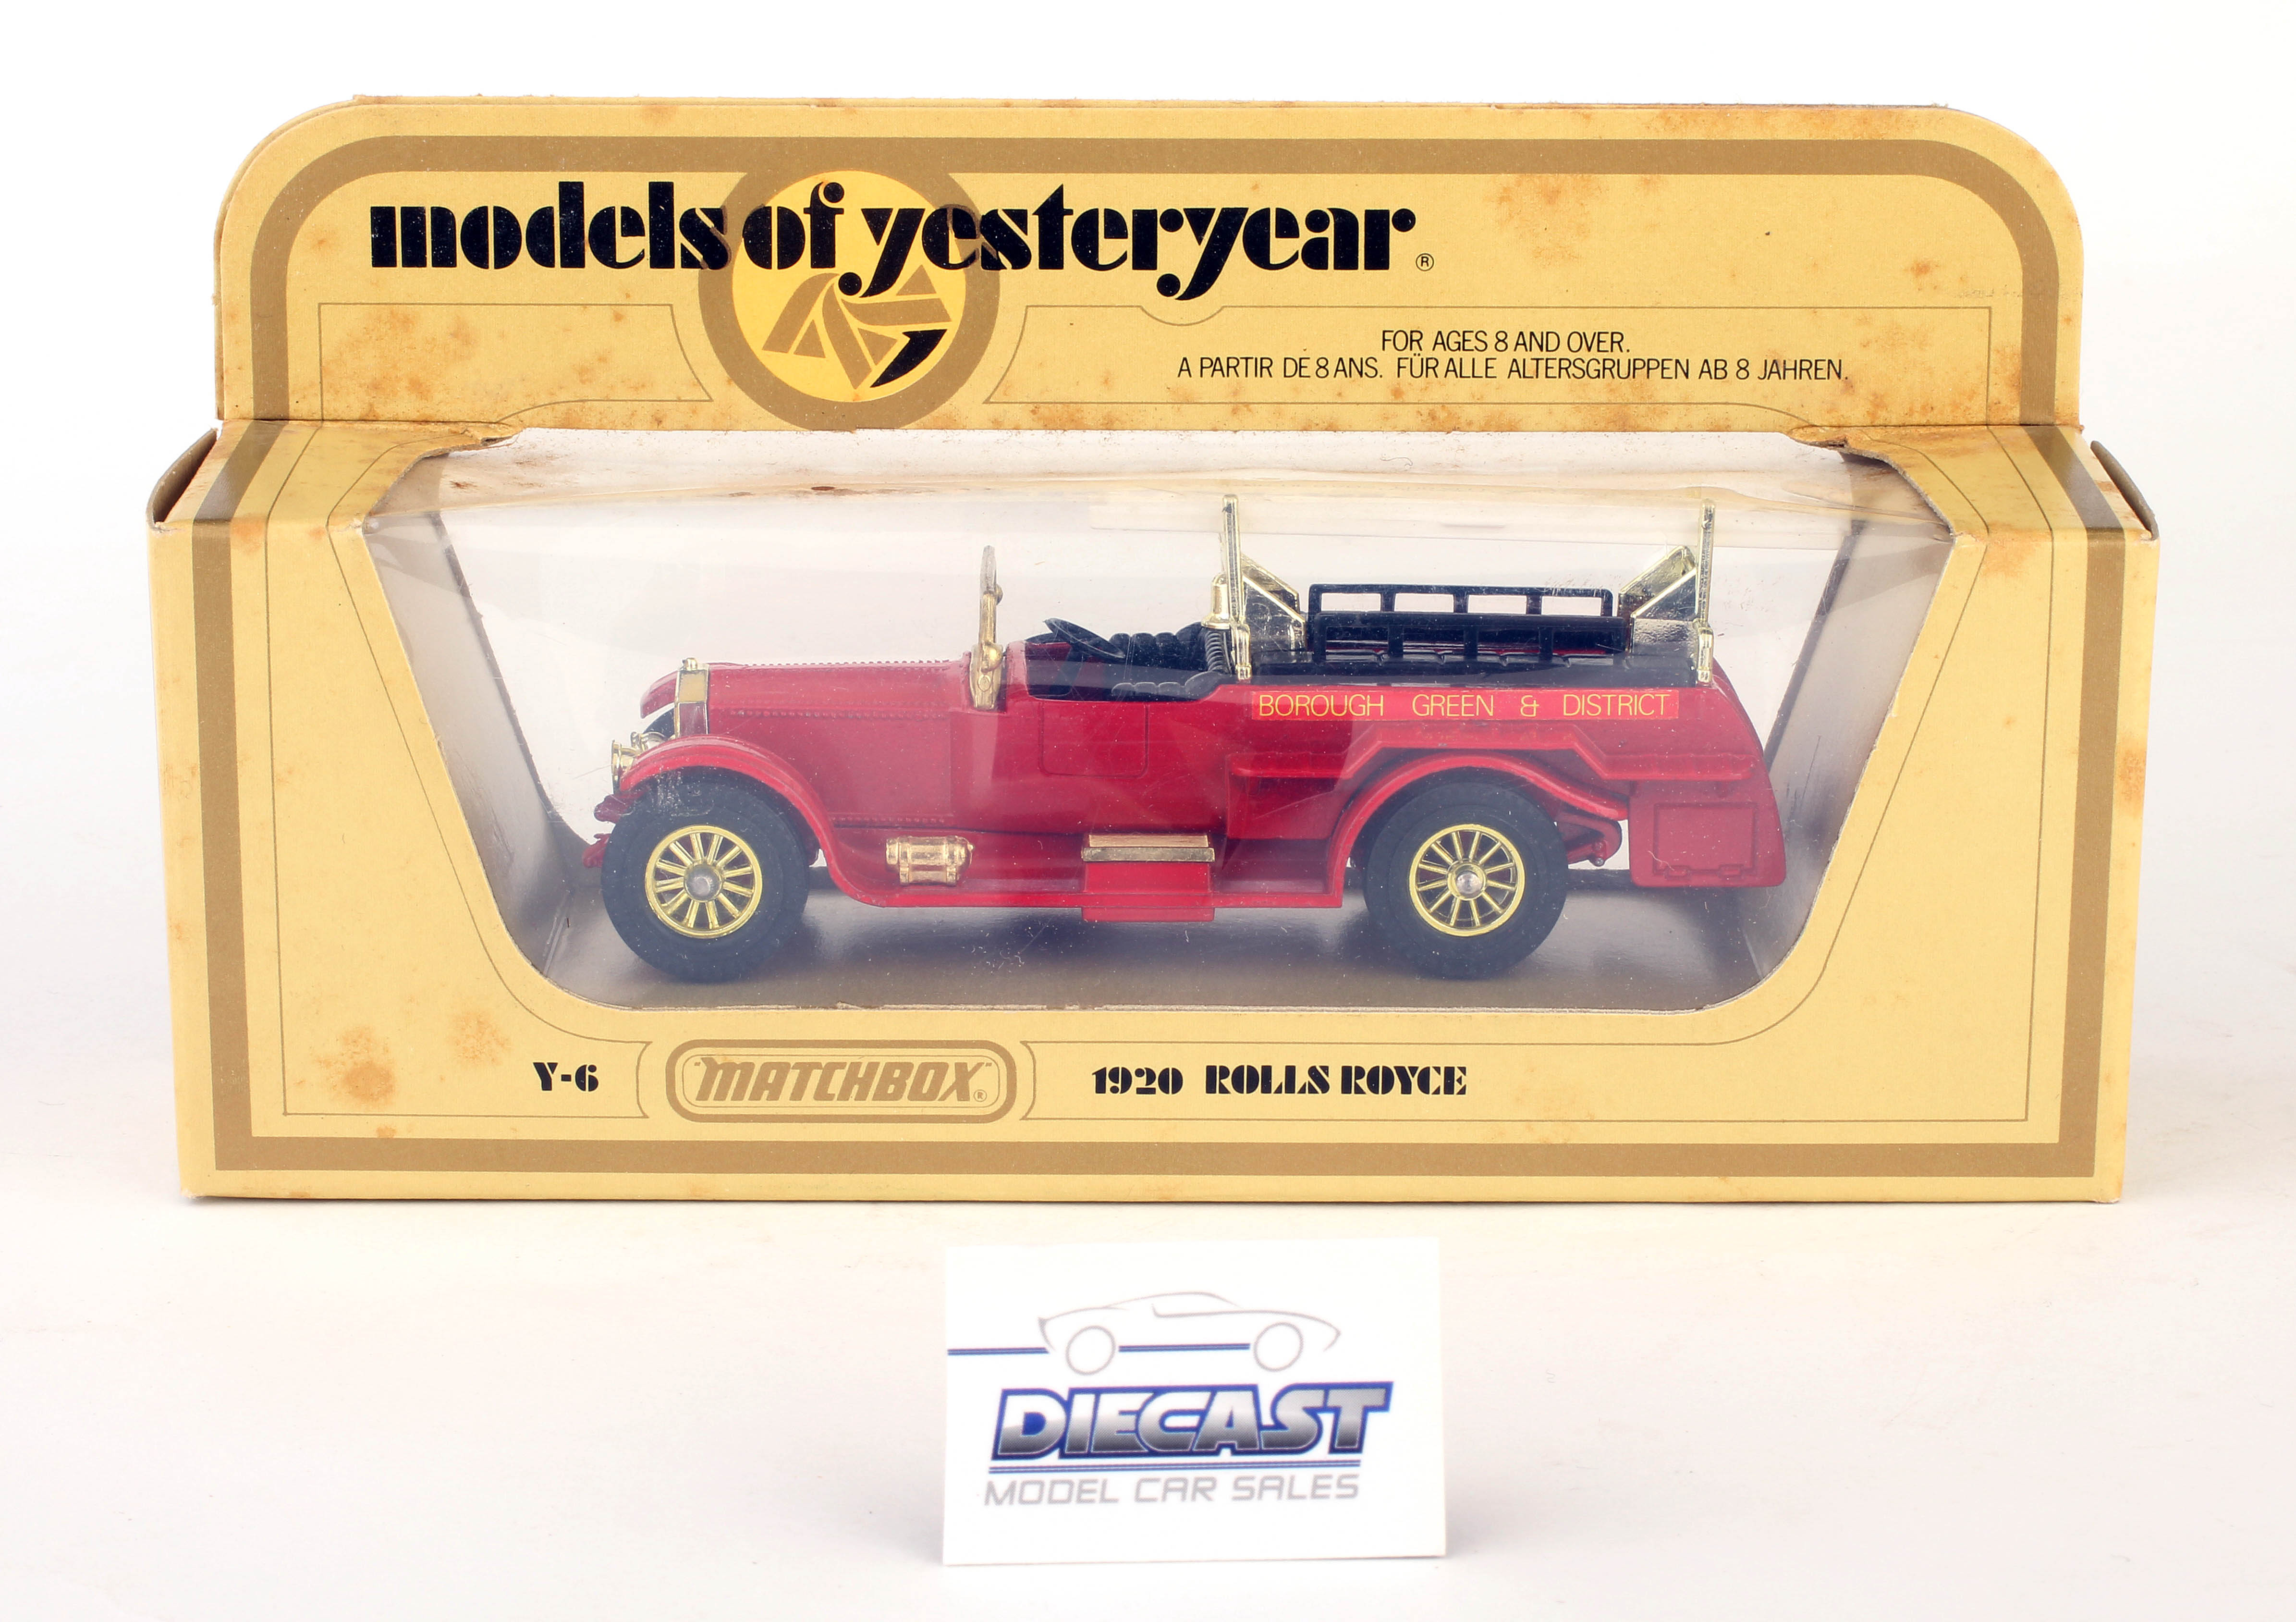 Matchbox 1:48 Models of Yesteryear 1920 Rolls Royce (Red with Gold Trim) (White Ladder) - Y-6